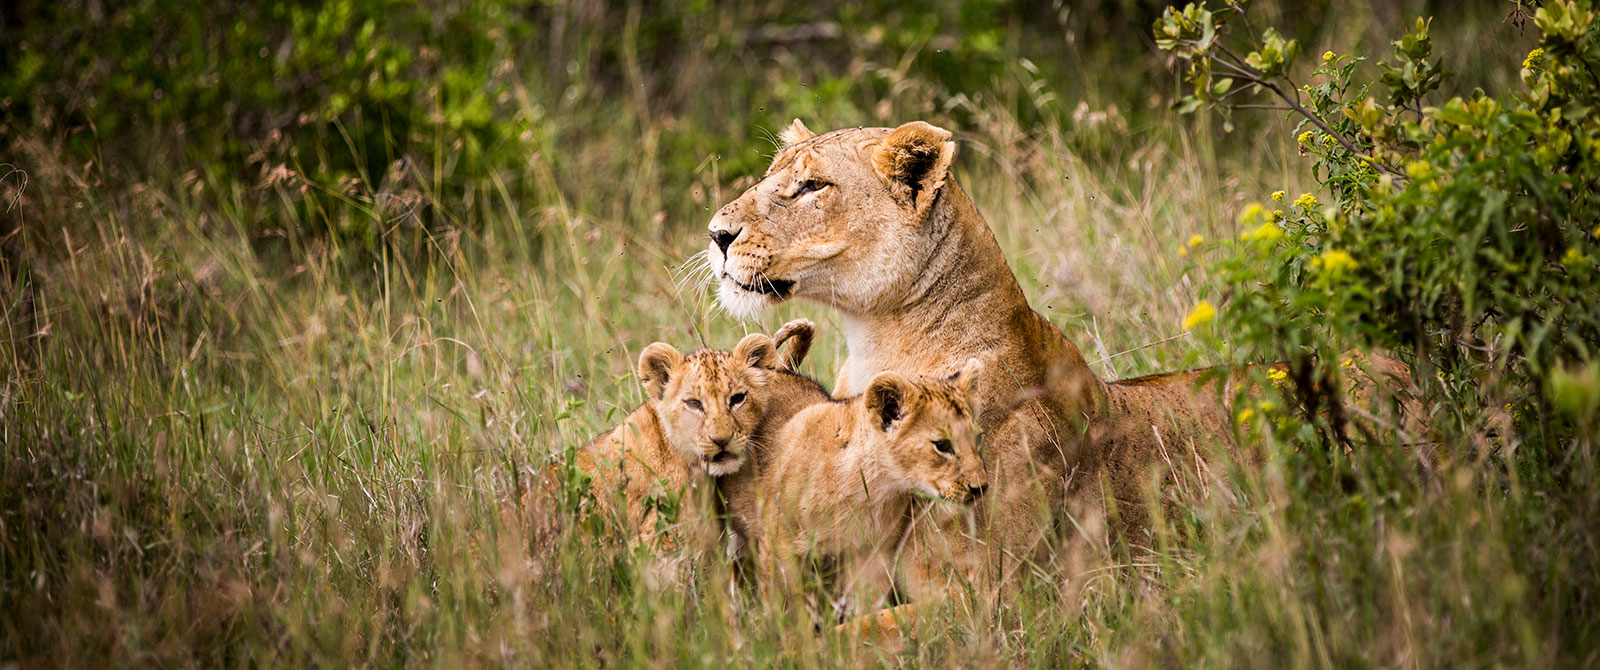 Lions in Kenya - Best Kenya Vacation and Safari Packages